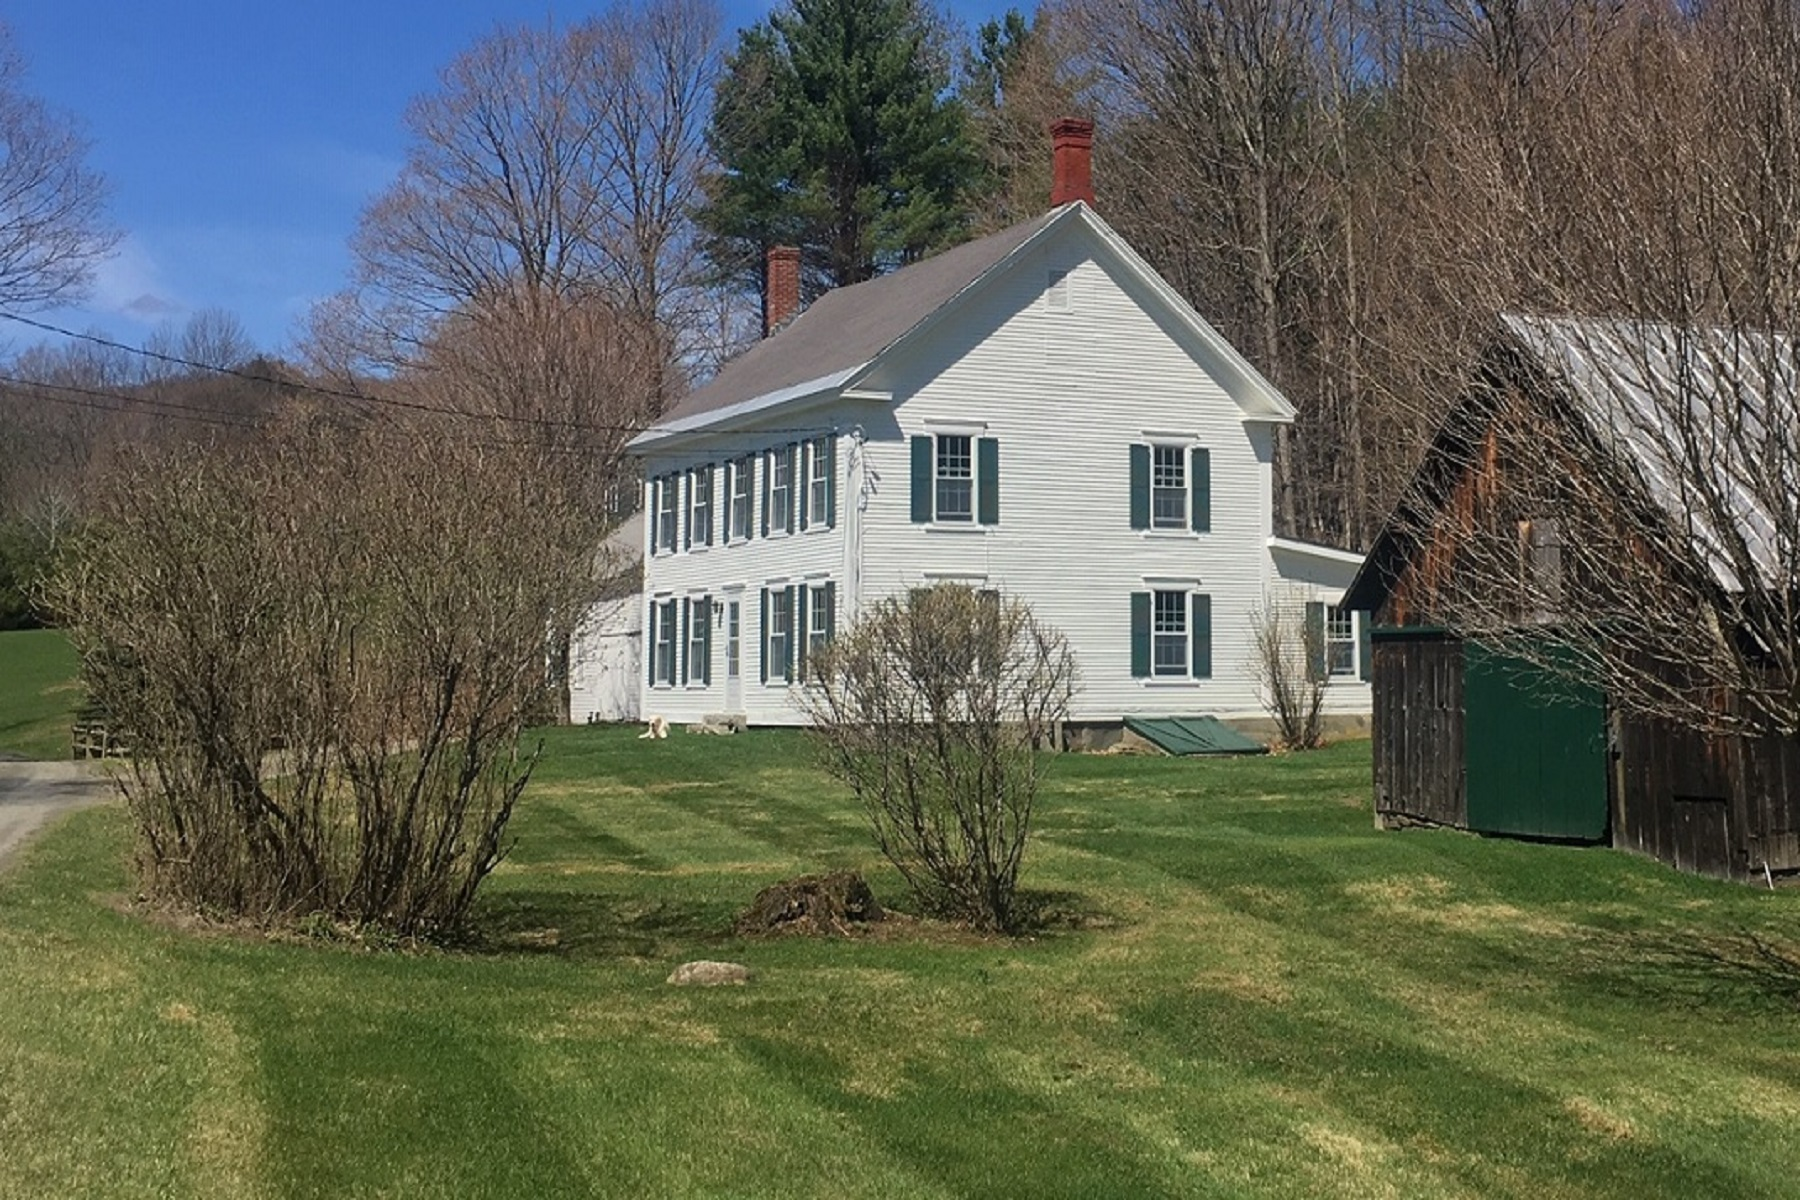 Single Family Homes for Sale at Harrington Family Homestead 390 Harrington Road West Windsor, Vermont 05037 United States